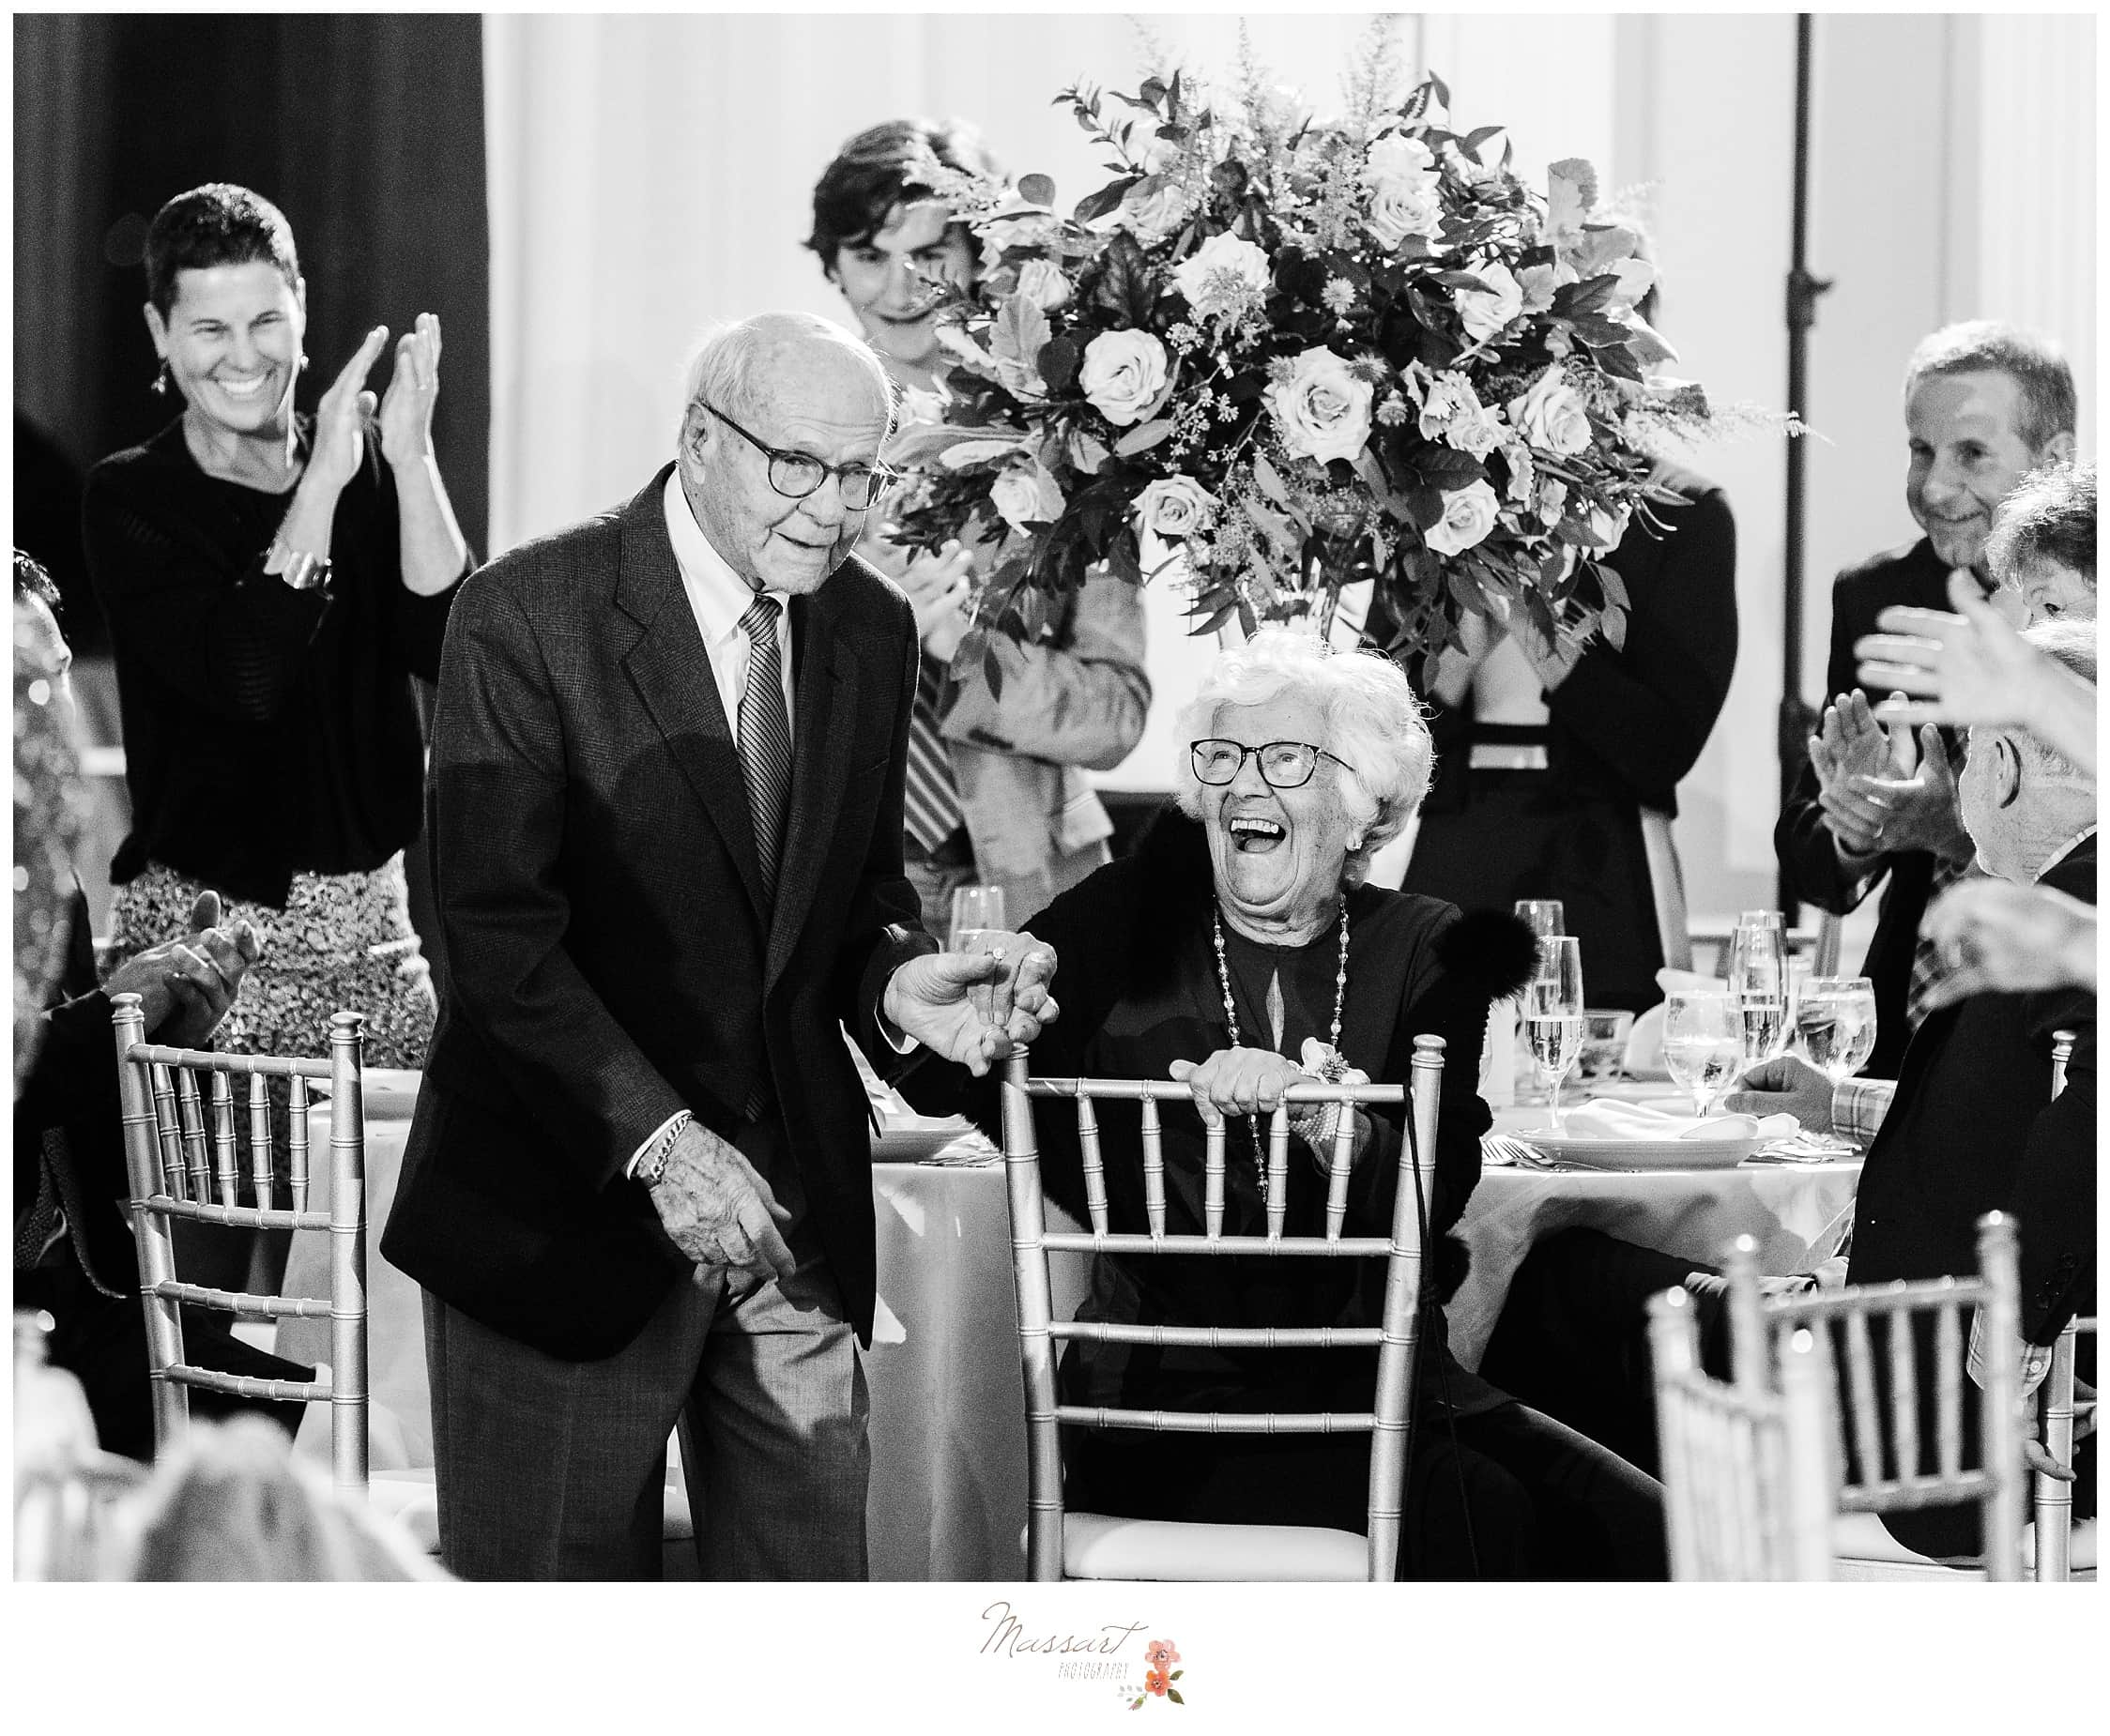 The bride's grandparents having fun at the wedding reception photographed by Massart Photography Rhode Island